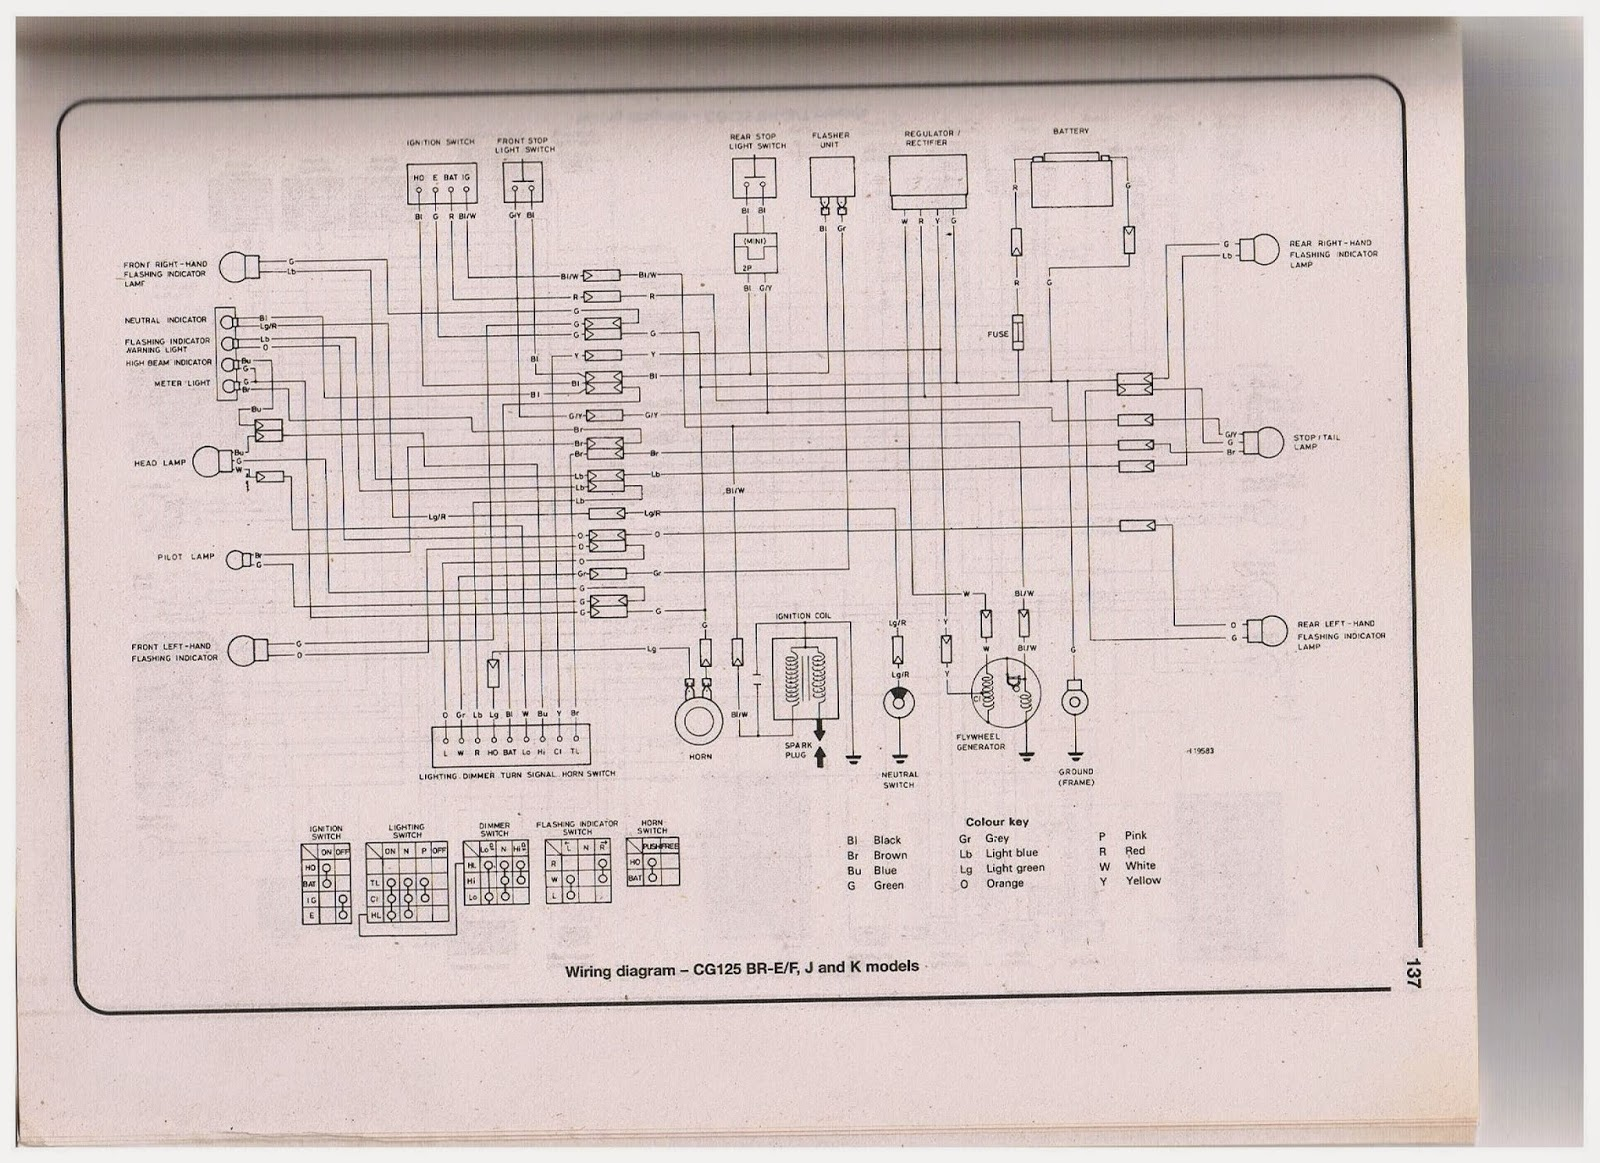 hight resolution of honda cg 125 owner blog honda cg 125 wiring diagrams andhonda cg125 br s t models wiring